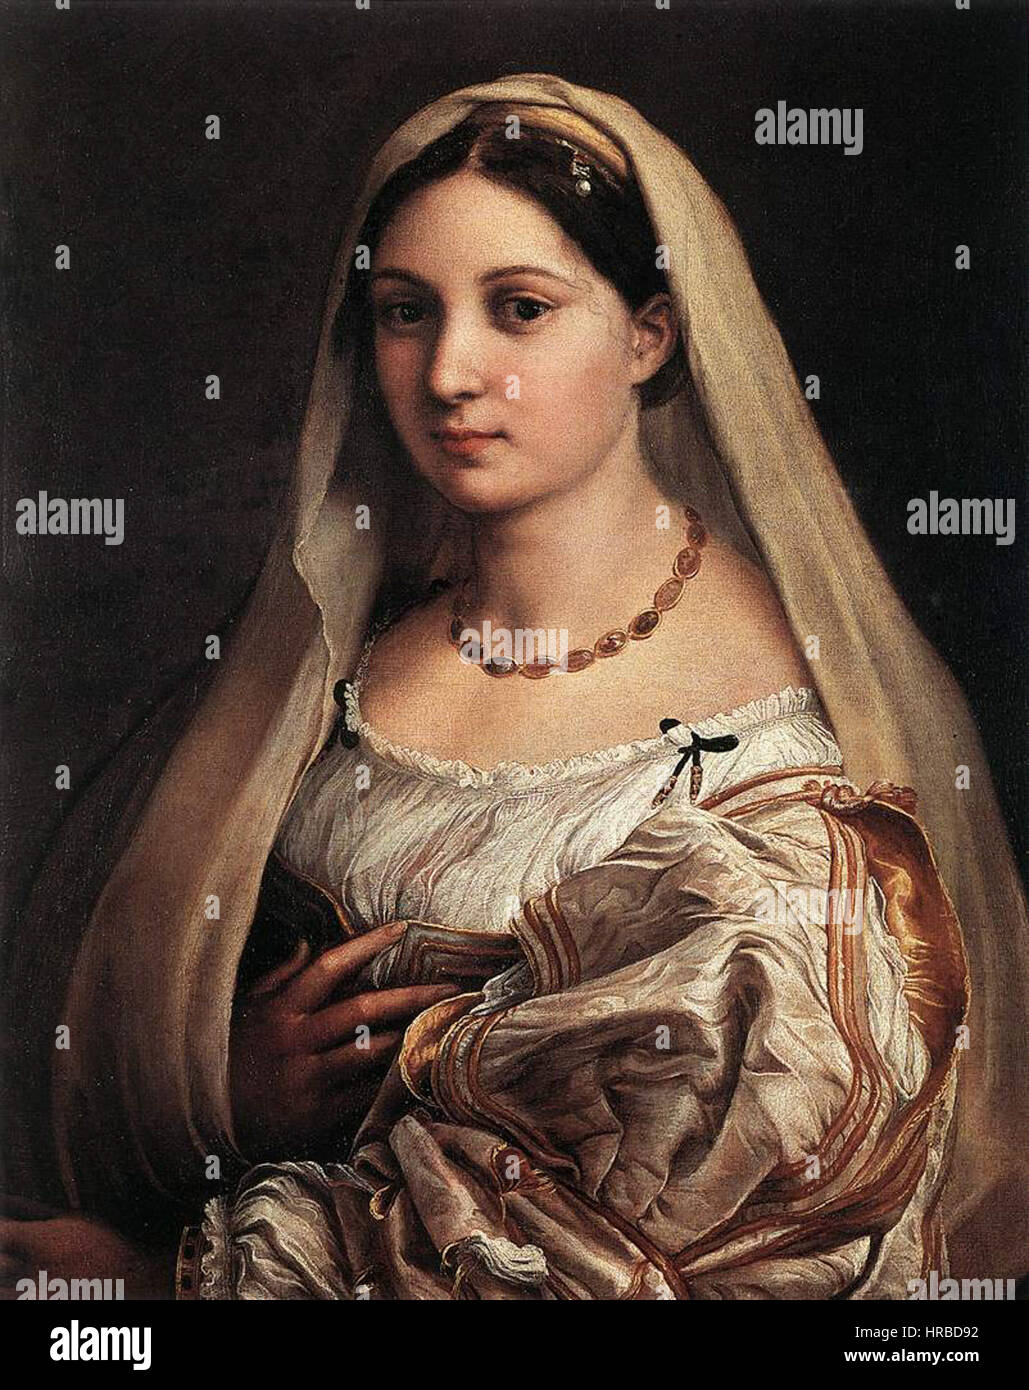 Raffaello Sanzio - Woman with a Veil (La Donna Velata) - WGA18824 Stock Photo